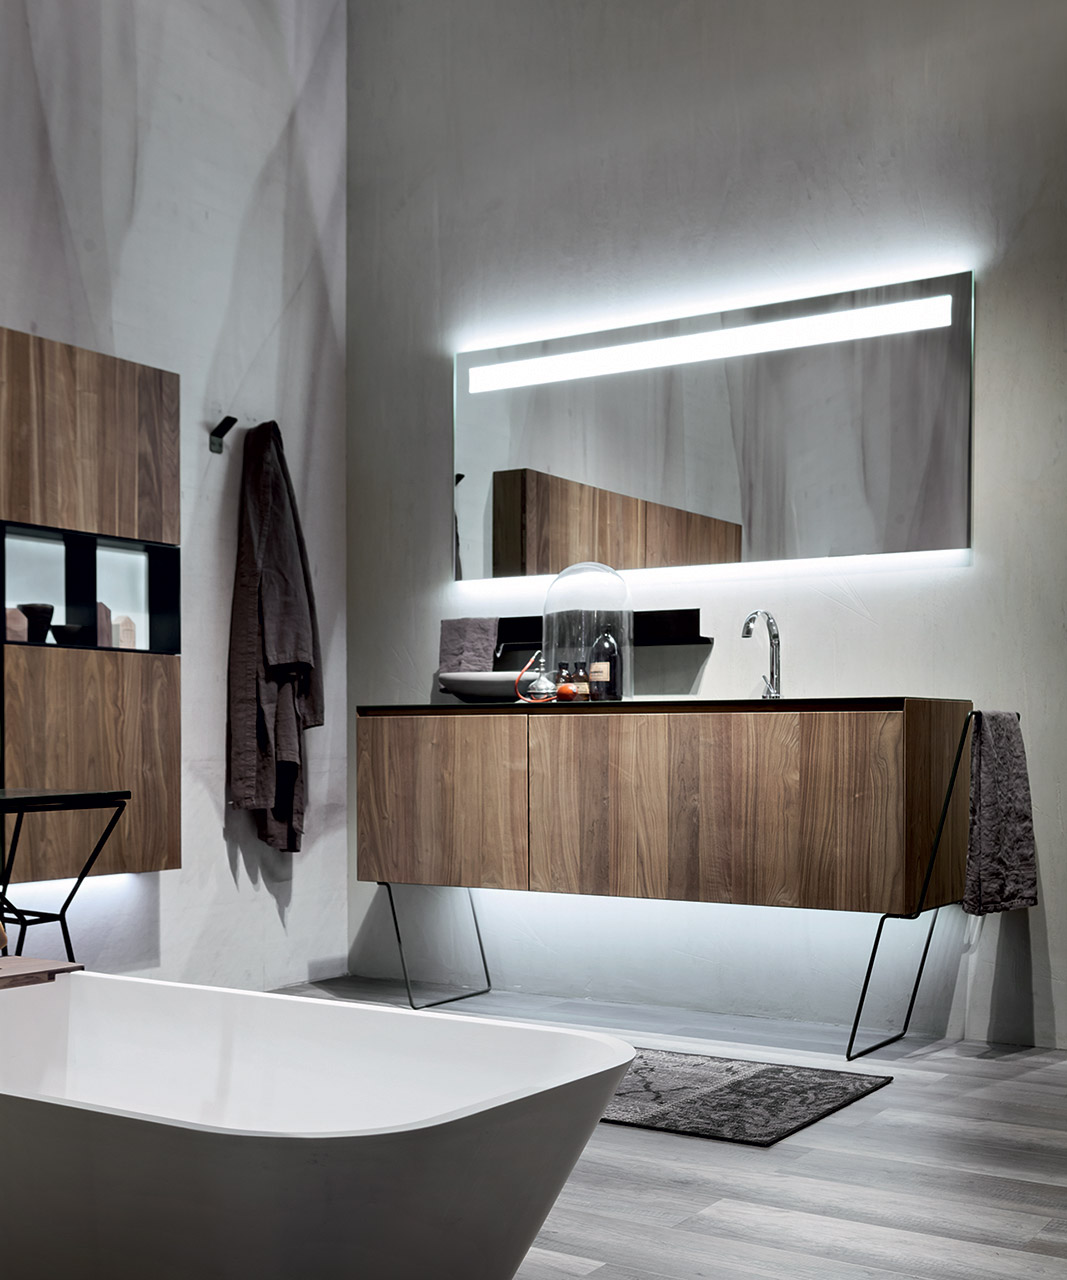 Lettieri Arredo Bagno.About Us Tragni Showroom